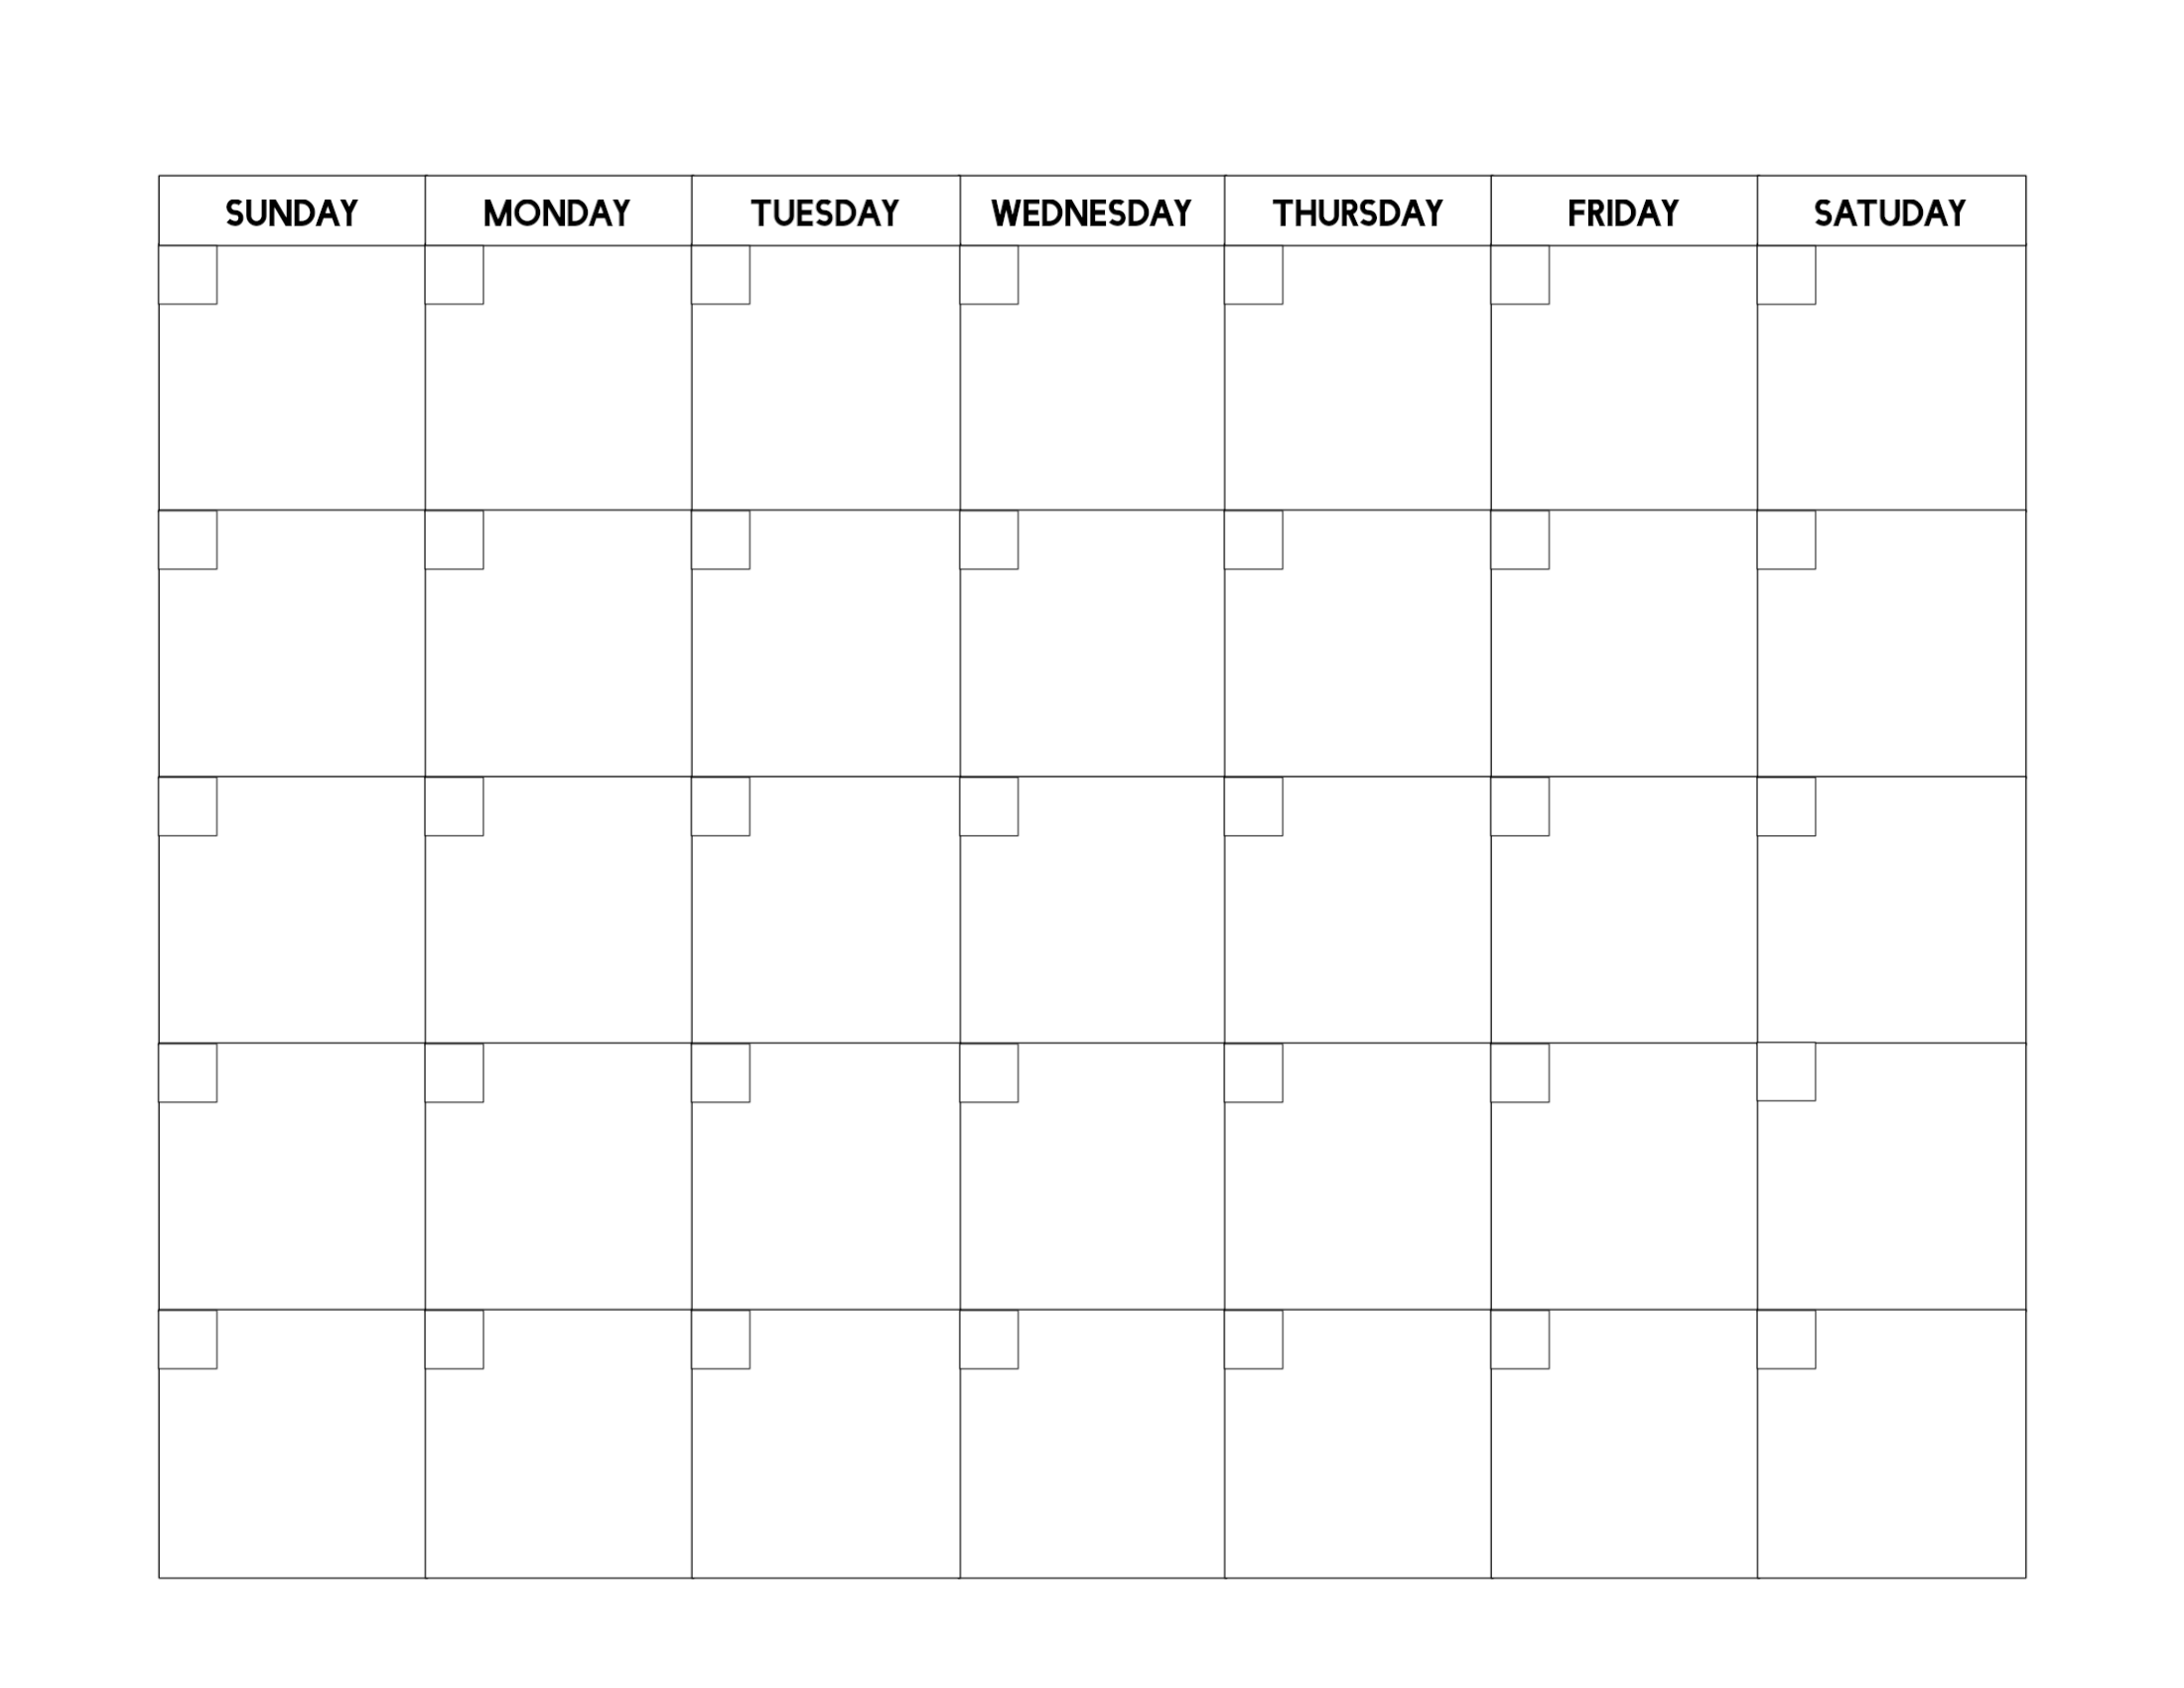 image about Free Printable Blank Calendars known as Free of charge Printable Blank Calendar Template - Paper Path Structure